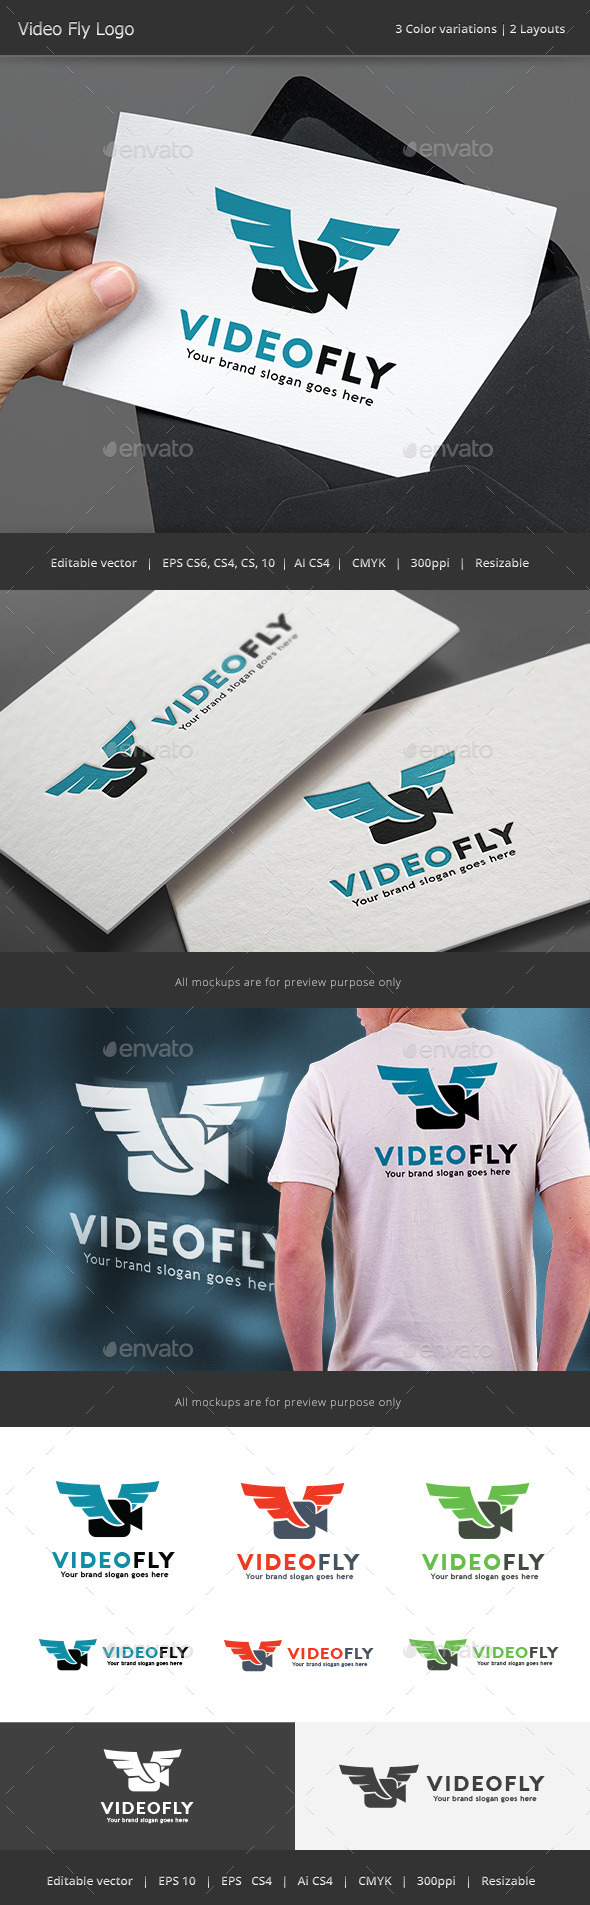 Video Fly Drone Logo - Vector Abstract